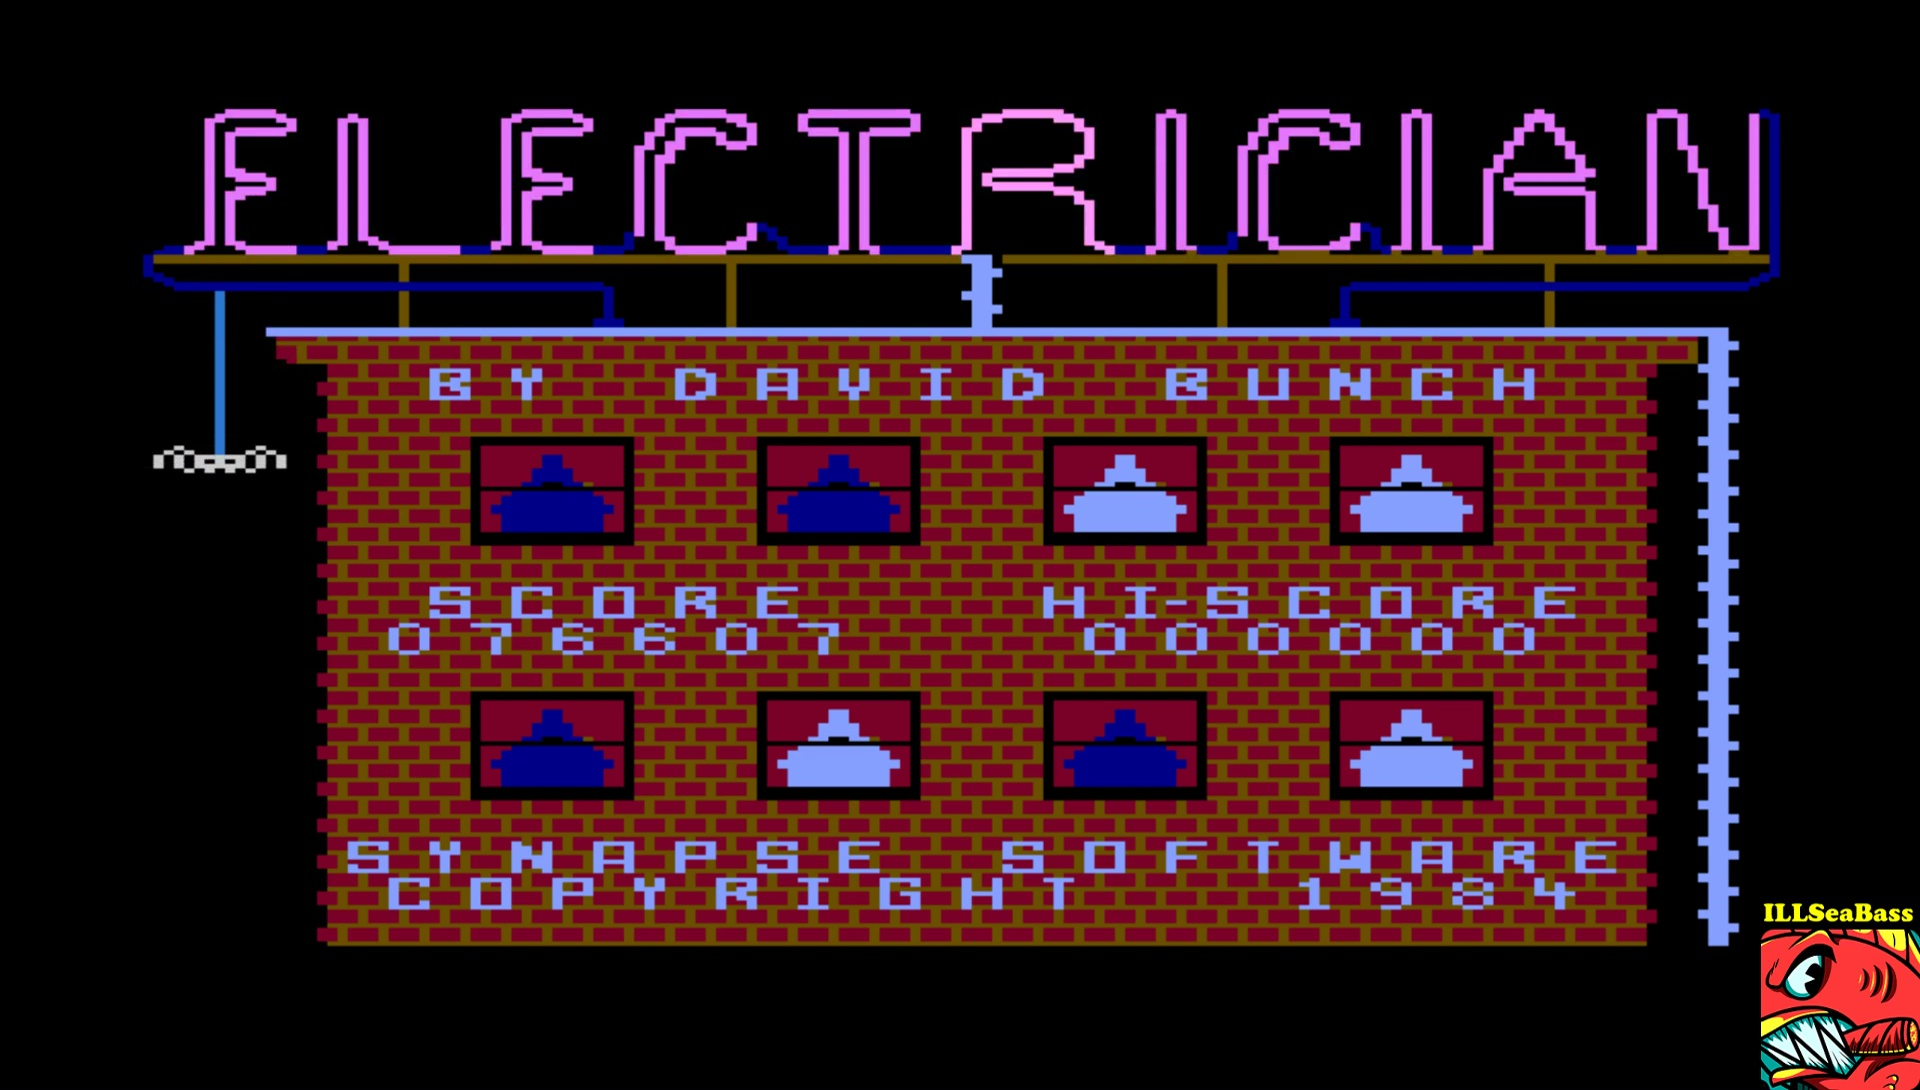 ILLSeaBass: Electrician (Atari 400/800/XL/XE Emulated) 76,607 points on 2017-05-15 23:26:25